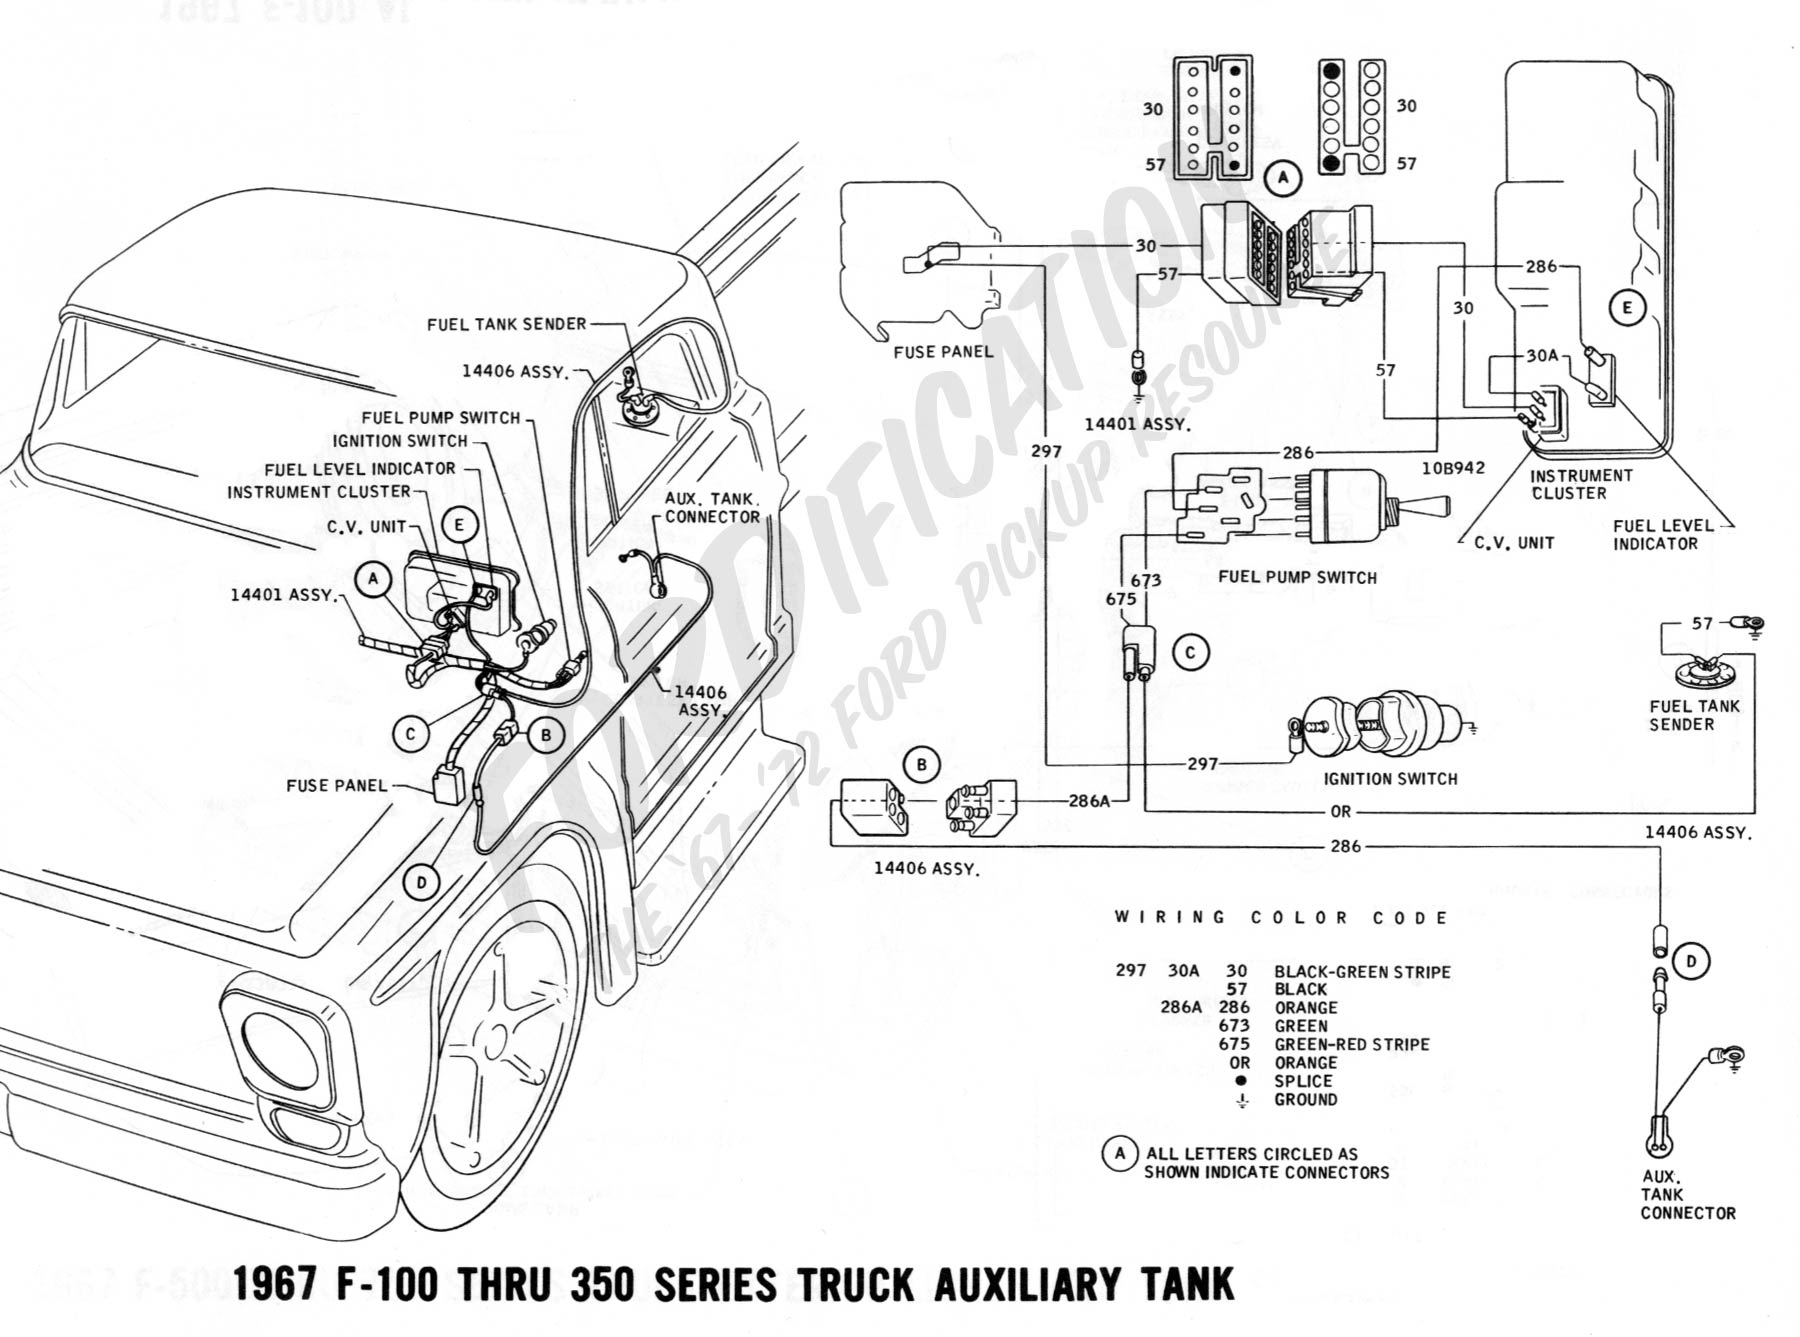 hight resolution of f150 fuel tank diagram simple wiring diagram schema 1988 f150 fuel system diagram 1995 ford f150 dual fuel tank diagram